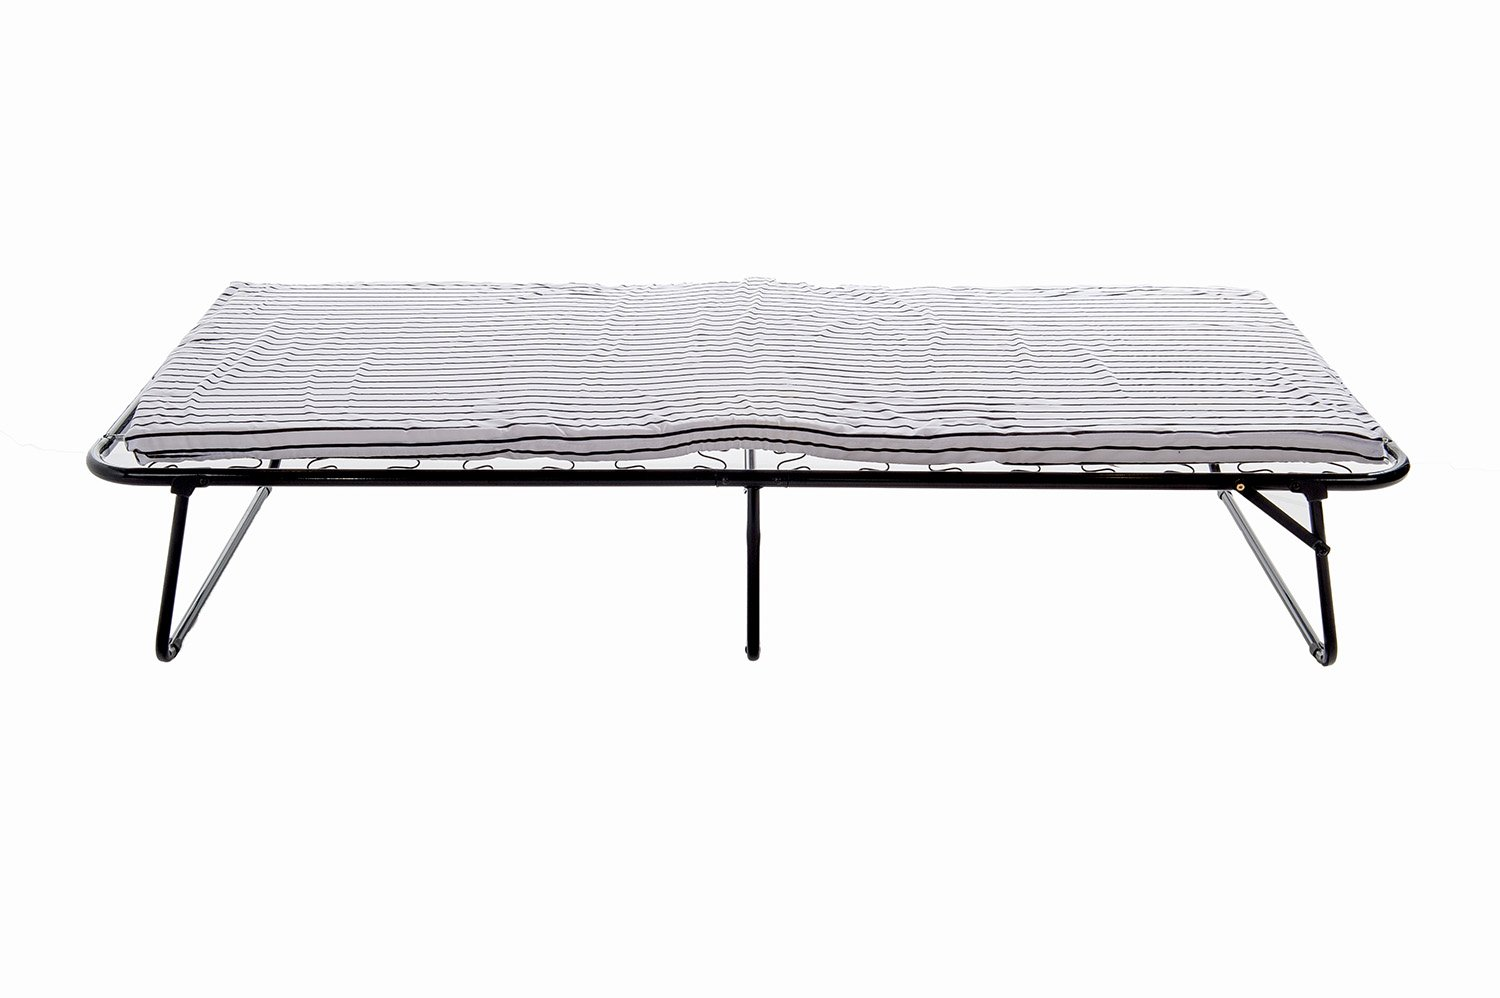 Home Source Industries, 223 Cot Bed, Folding Bed with Mattress, Black and White, L 75'' W 31'' x H 13'' by Home Source Industries